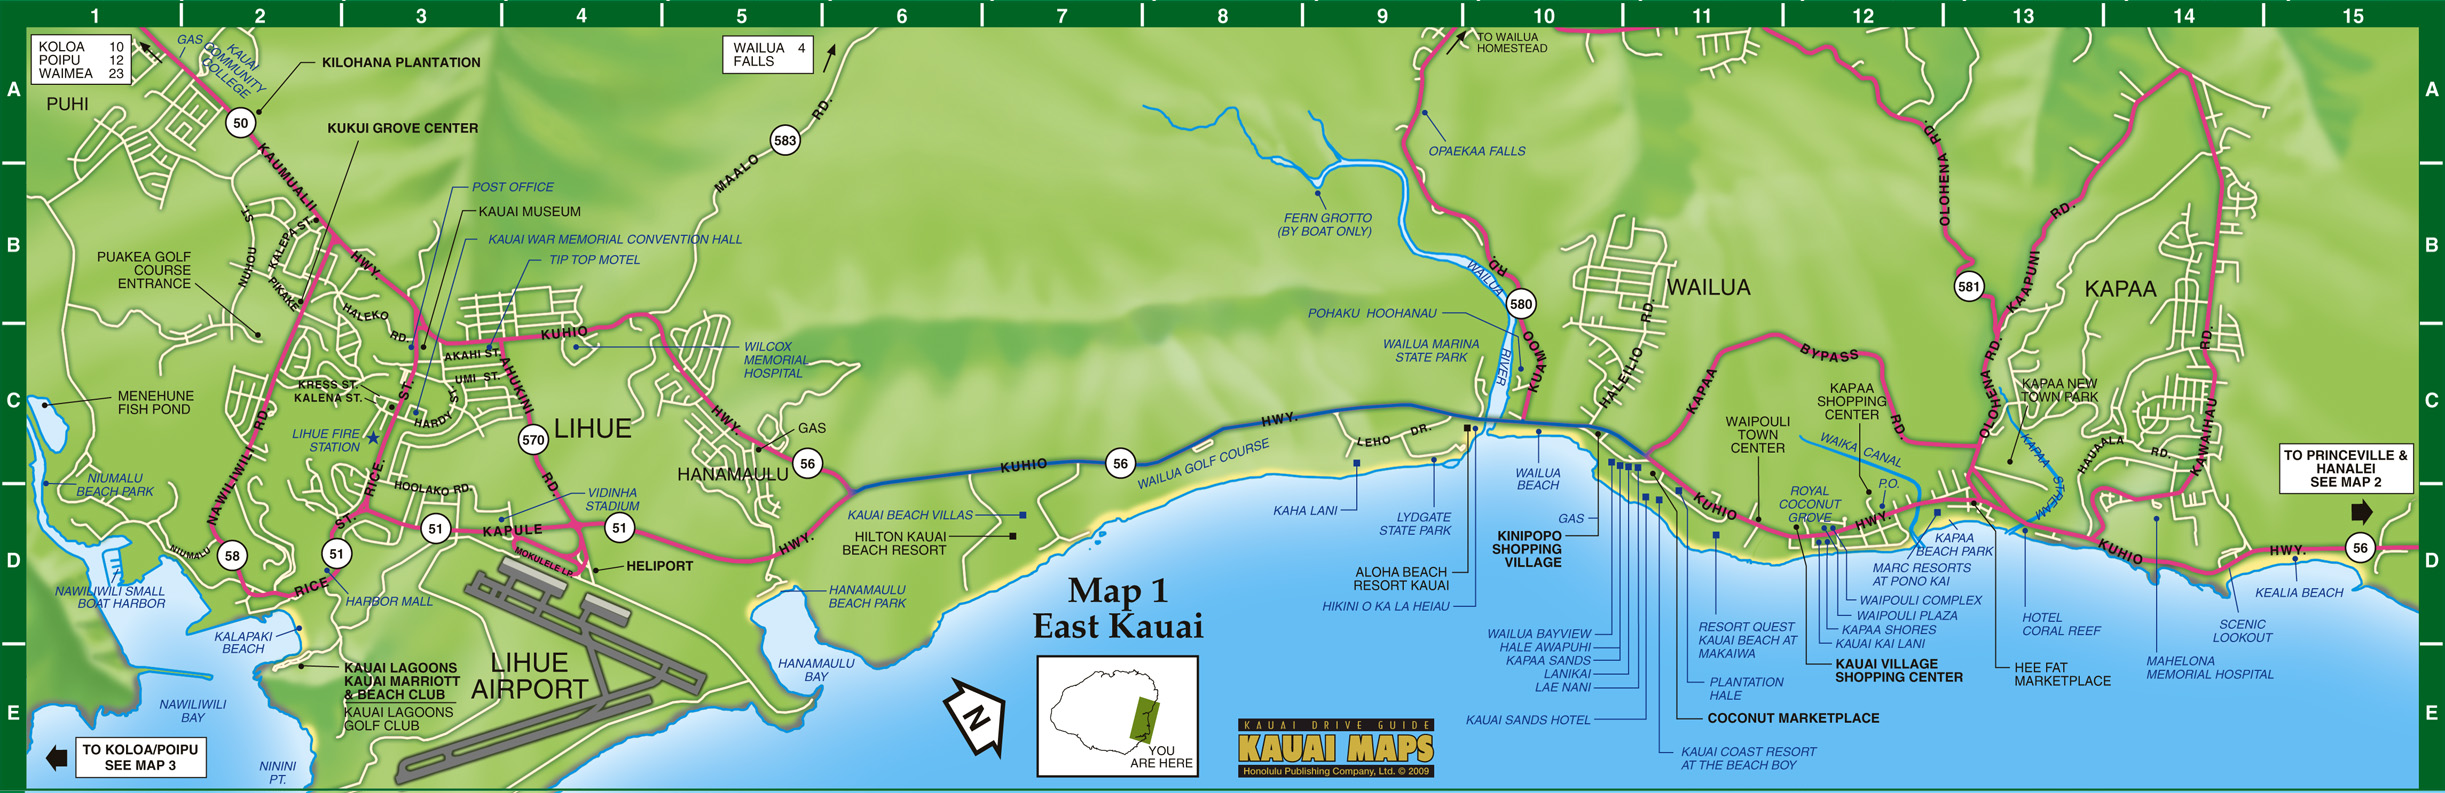 East Kauai Map Kauai HI US mappery – Kauai Tourist Map